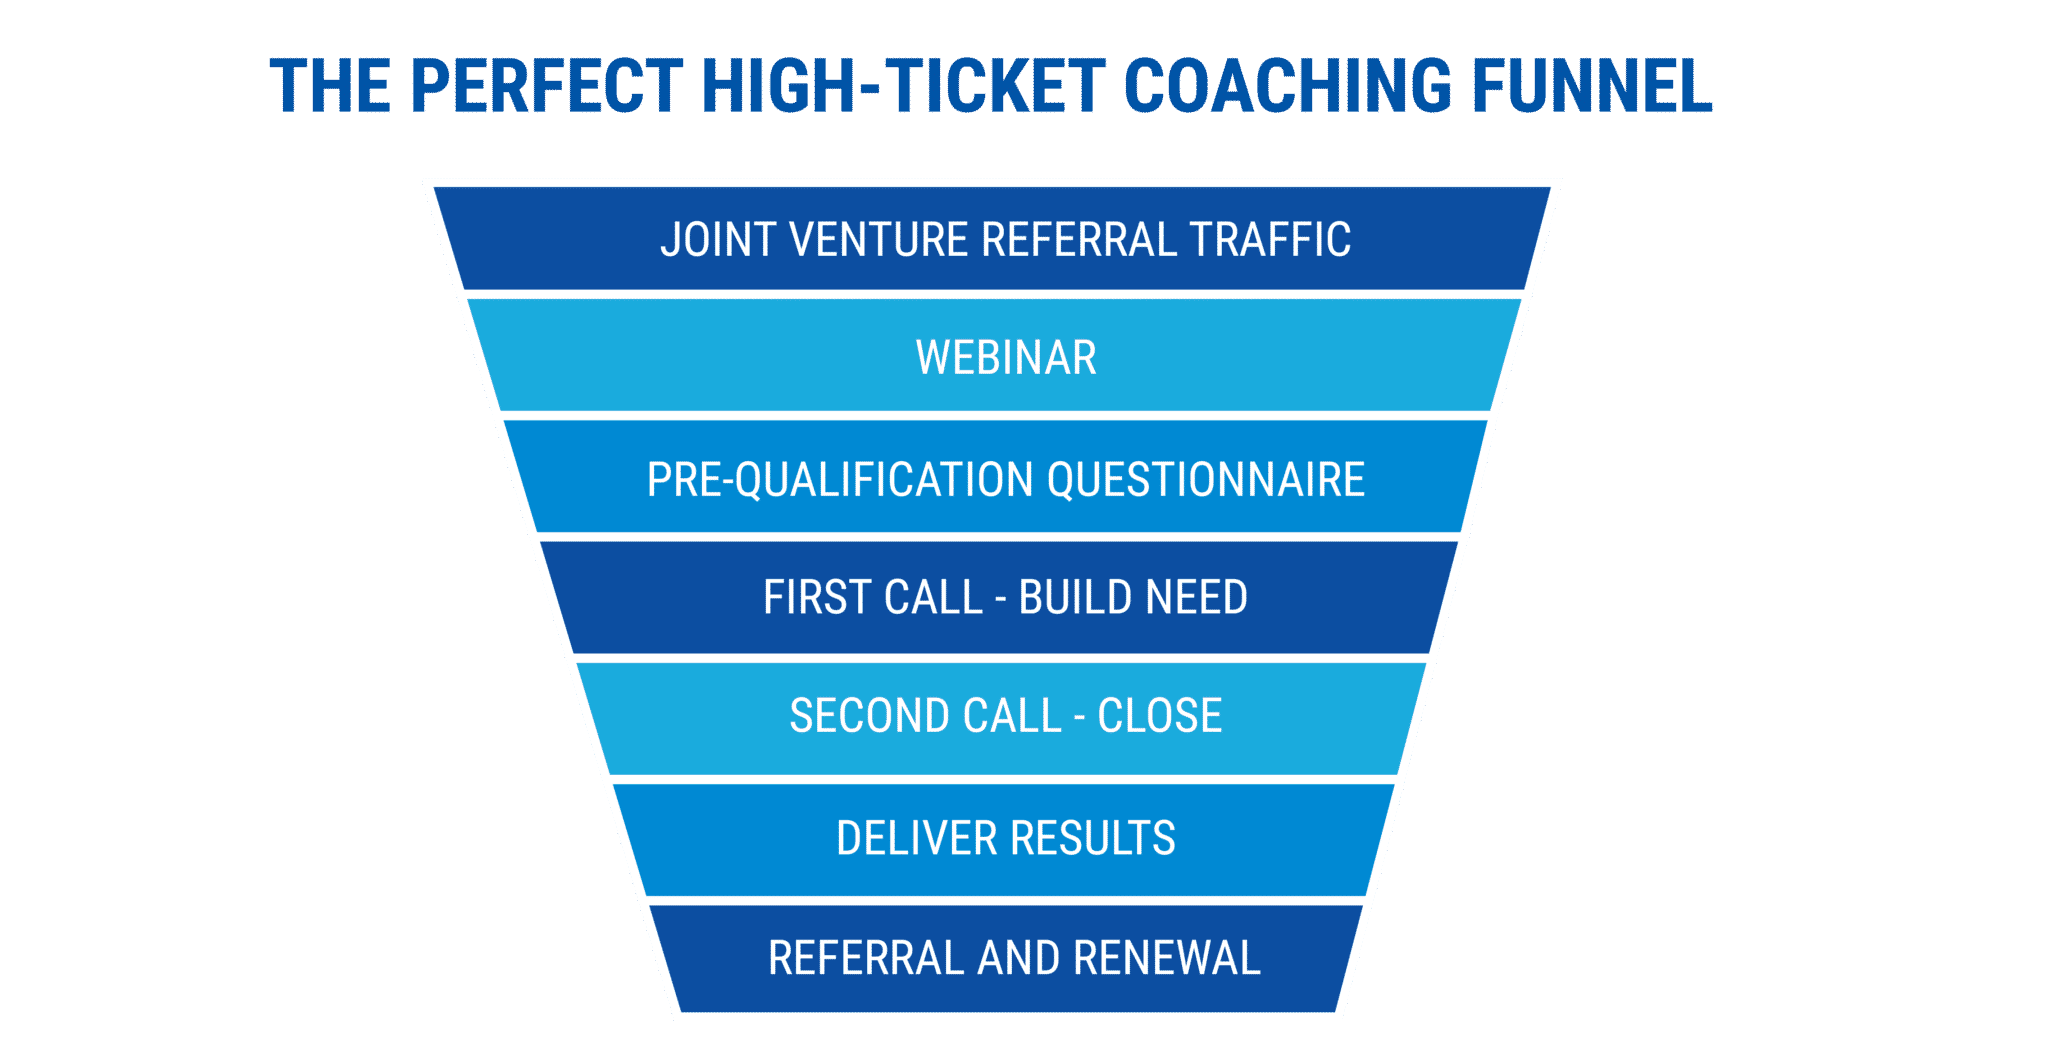 the perfect high-ticket coaching funnel - starting a coaching business while working full-time